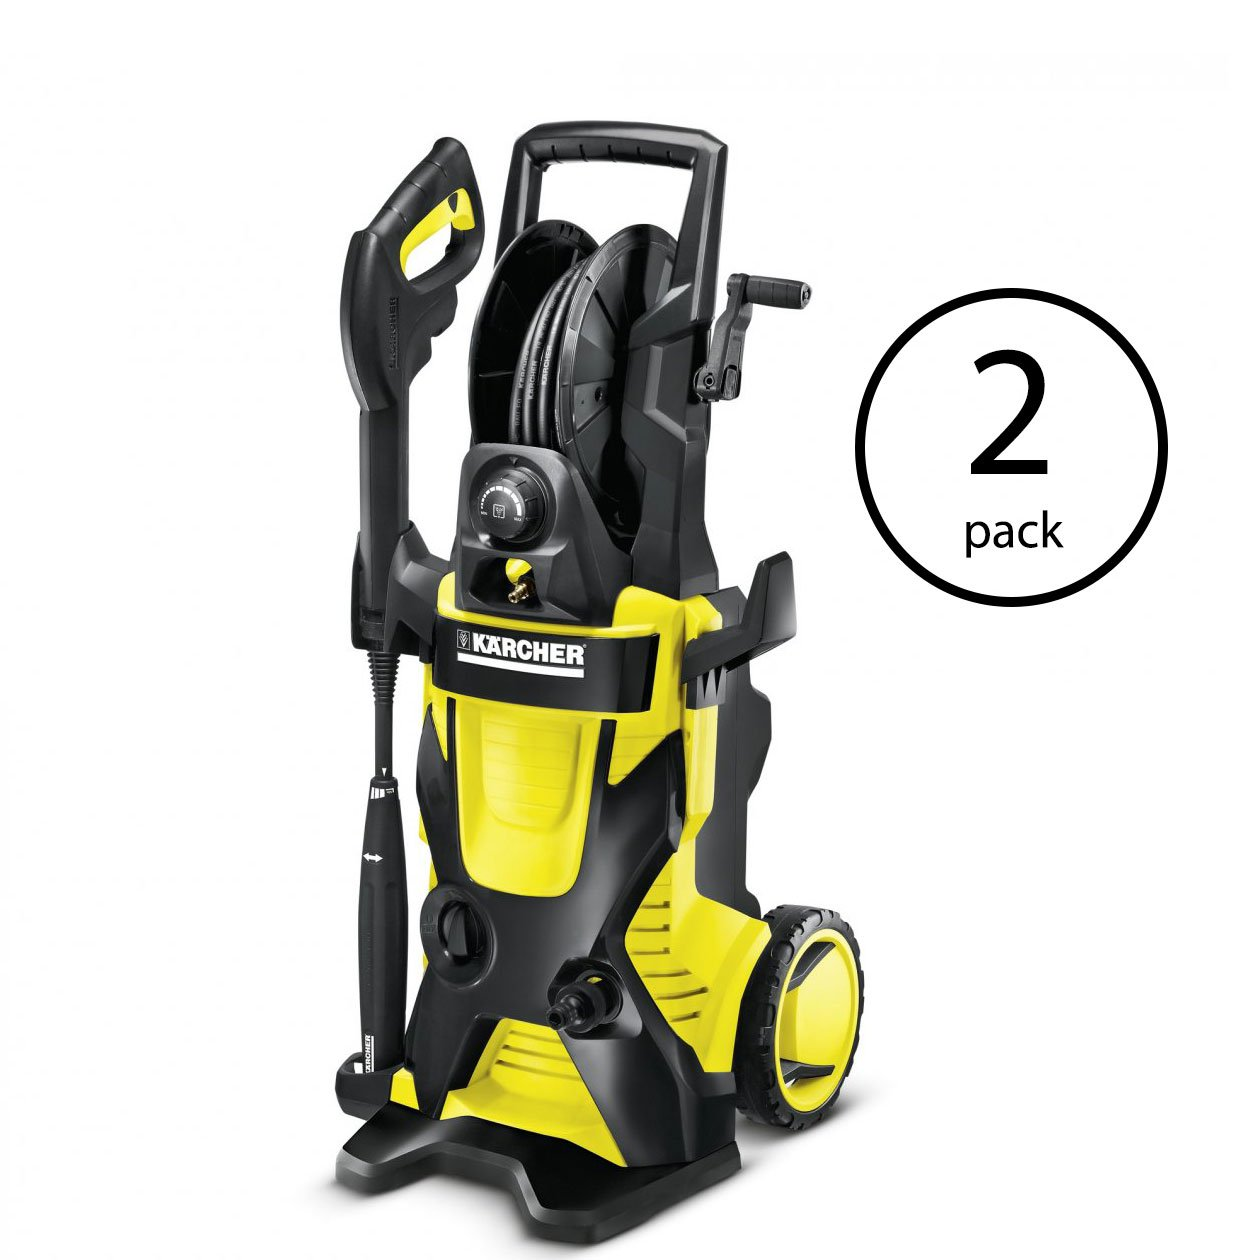 Karcher 2000 PSI 1.4 GPM Water Electric Pressure Power Washer with Hose (2 Pack) by Karcher